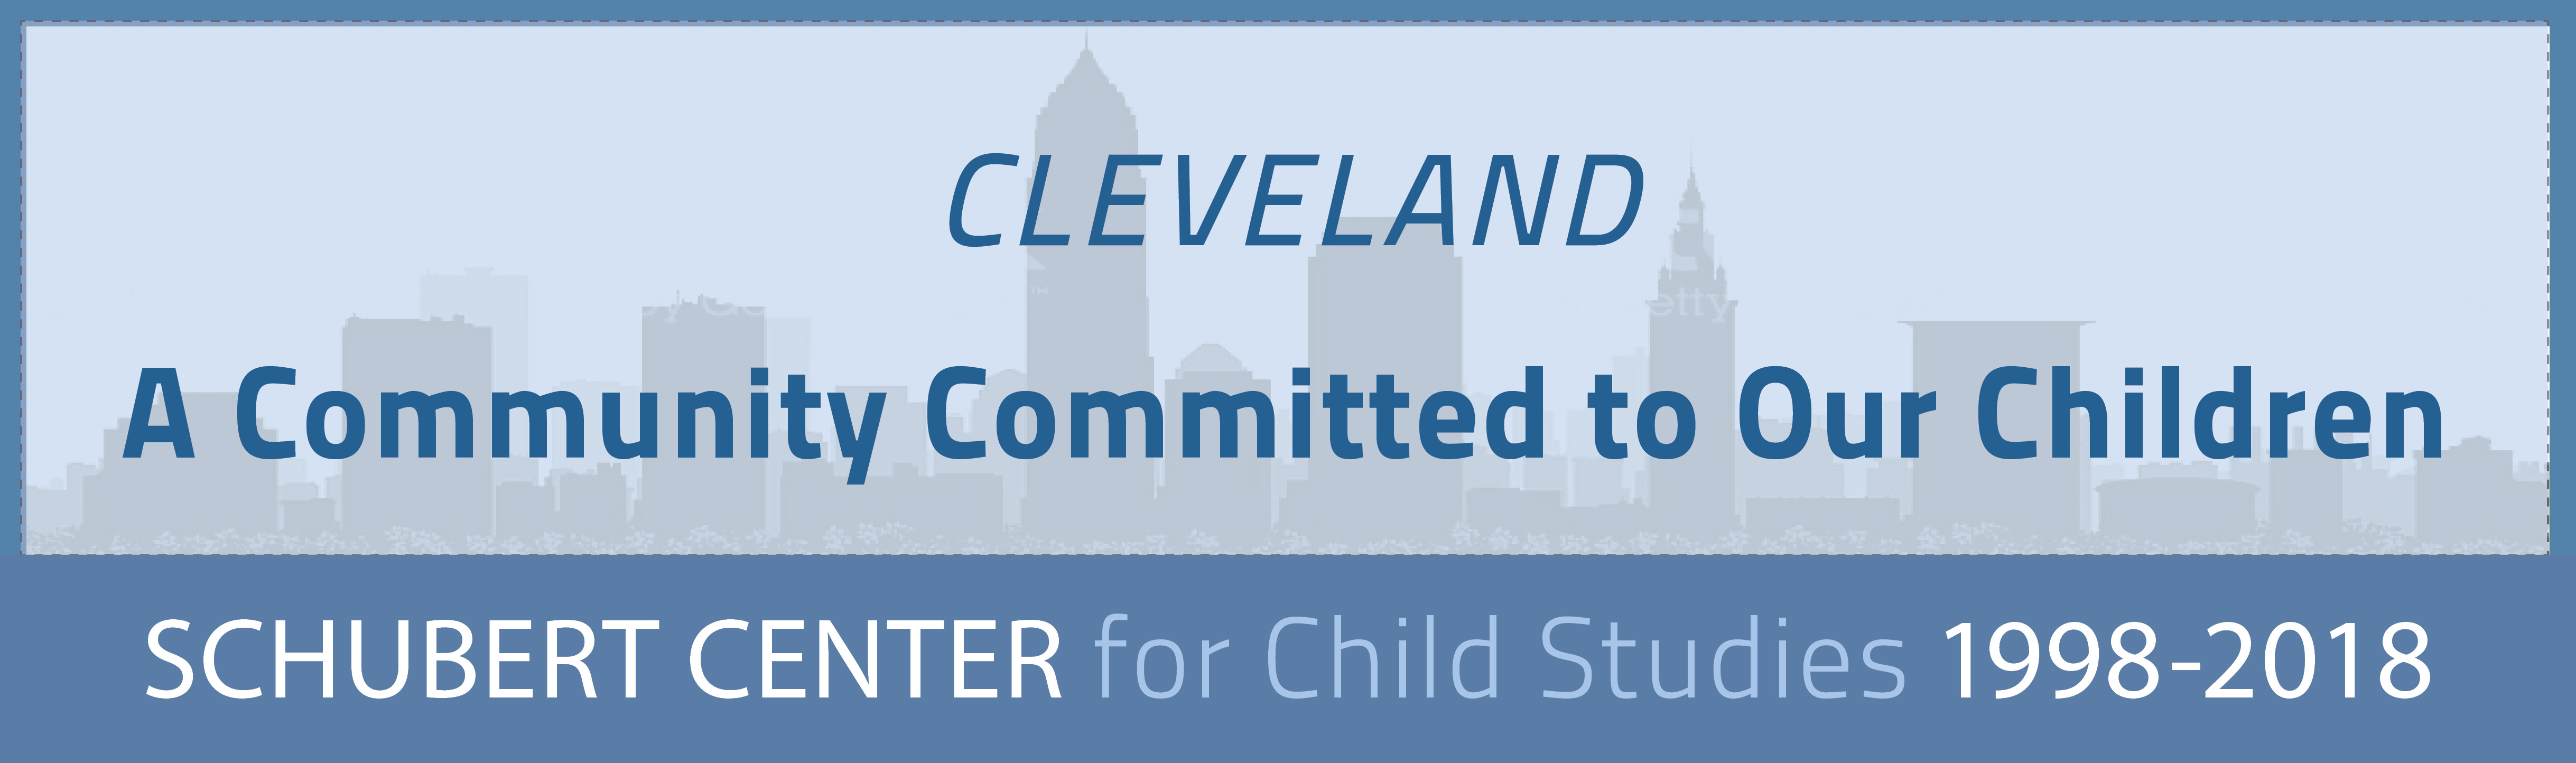 Cleveland: A Community Committed to Our Children Banner